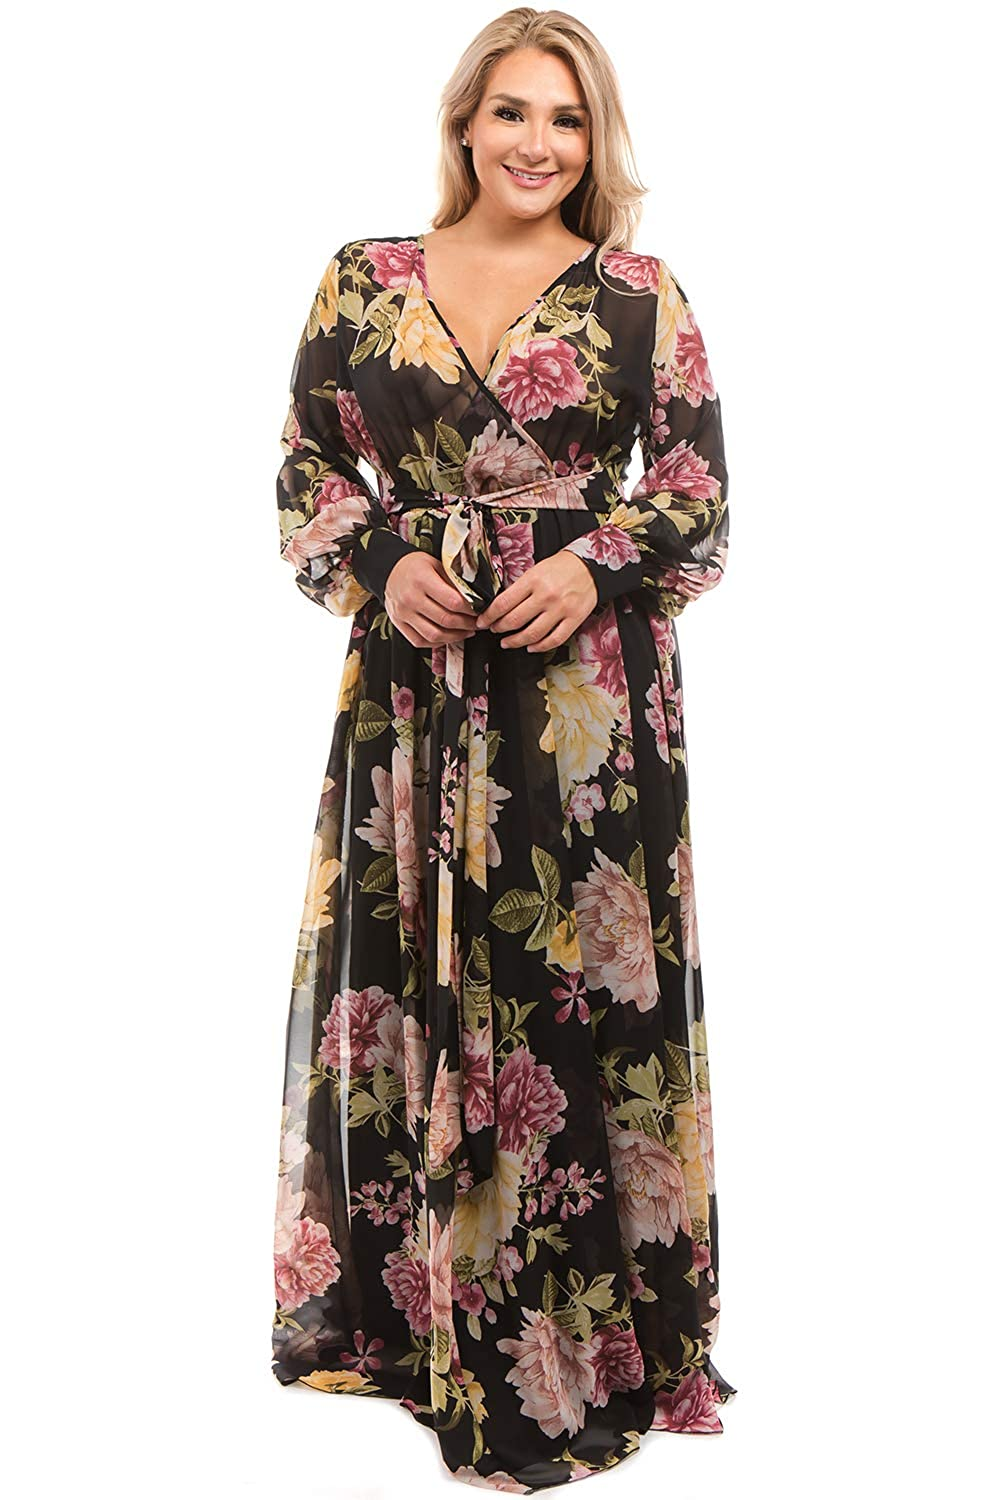 7991d685fb182 RICARICA Plus Size Floral Printed Chiffon Maxi Dress at Amazon Women s  Clothing store